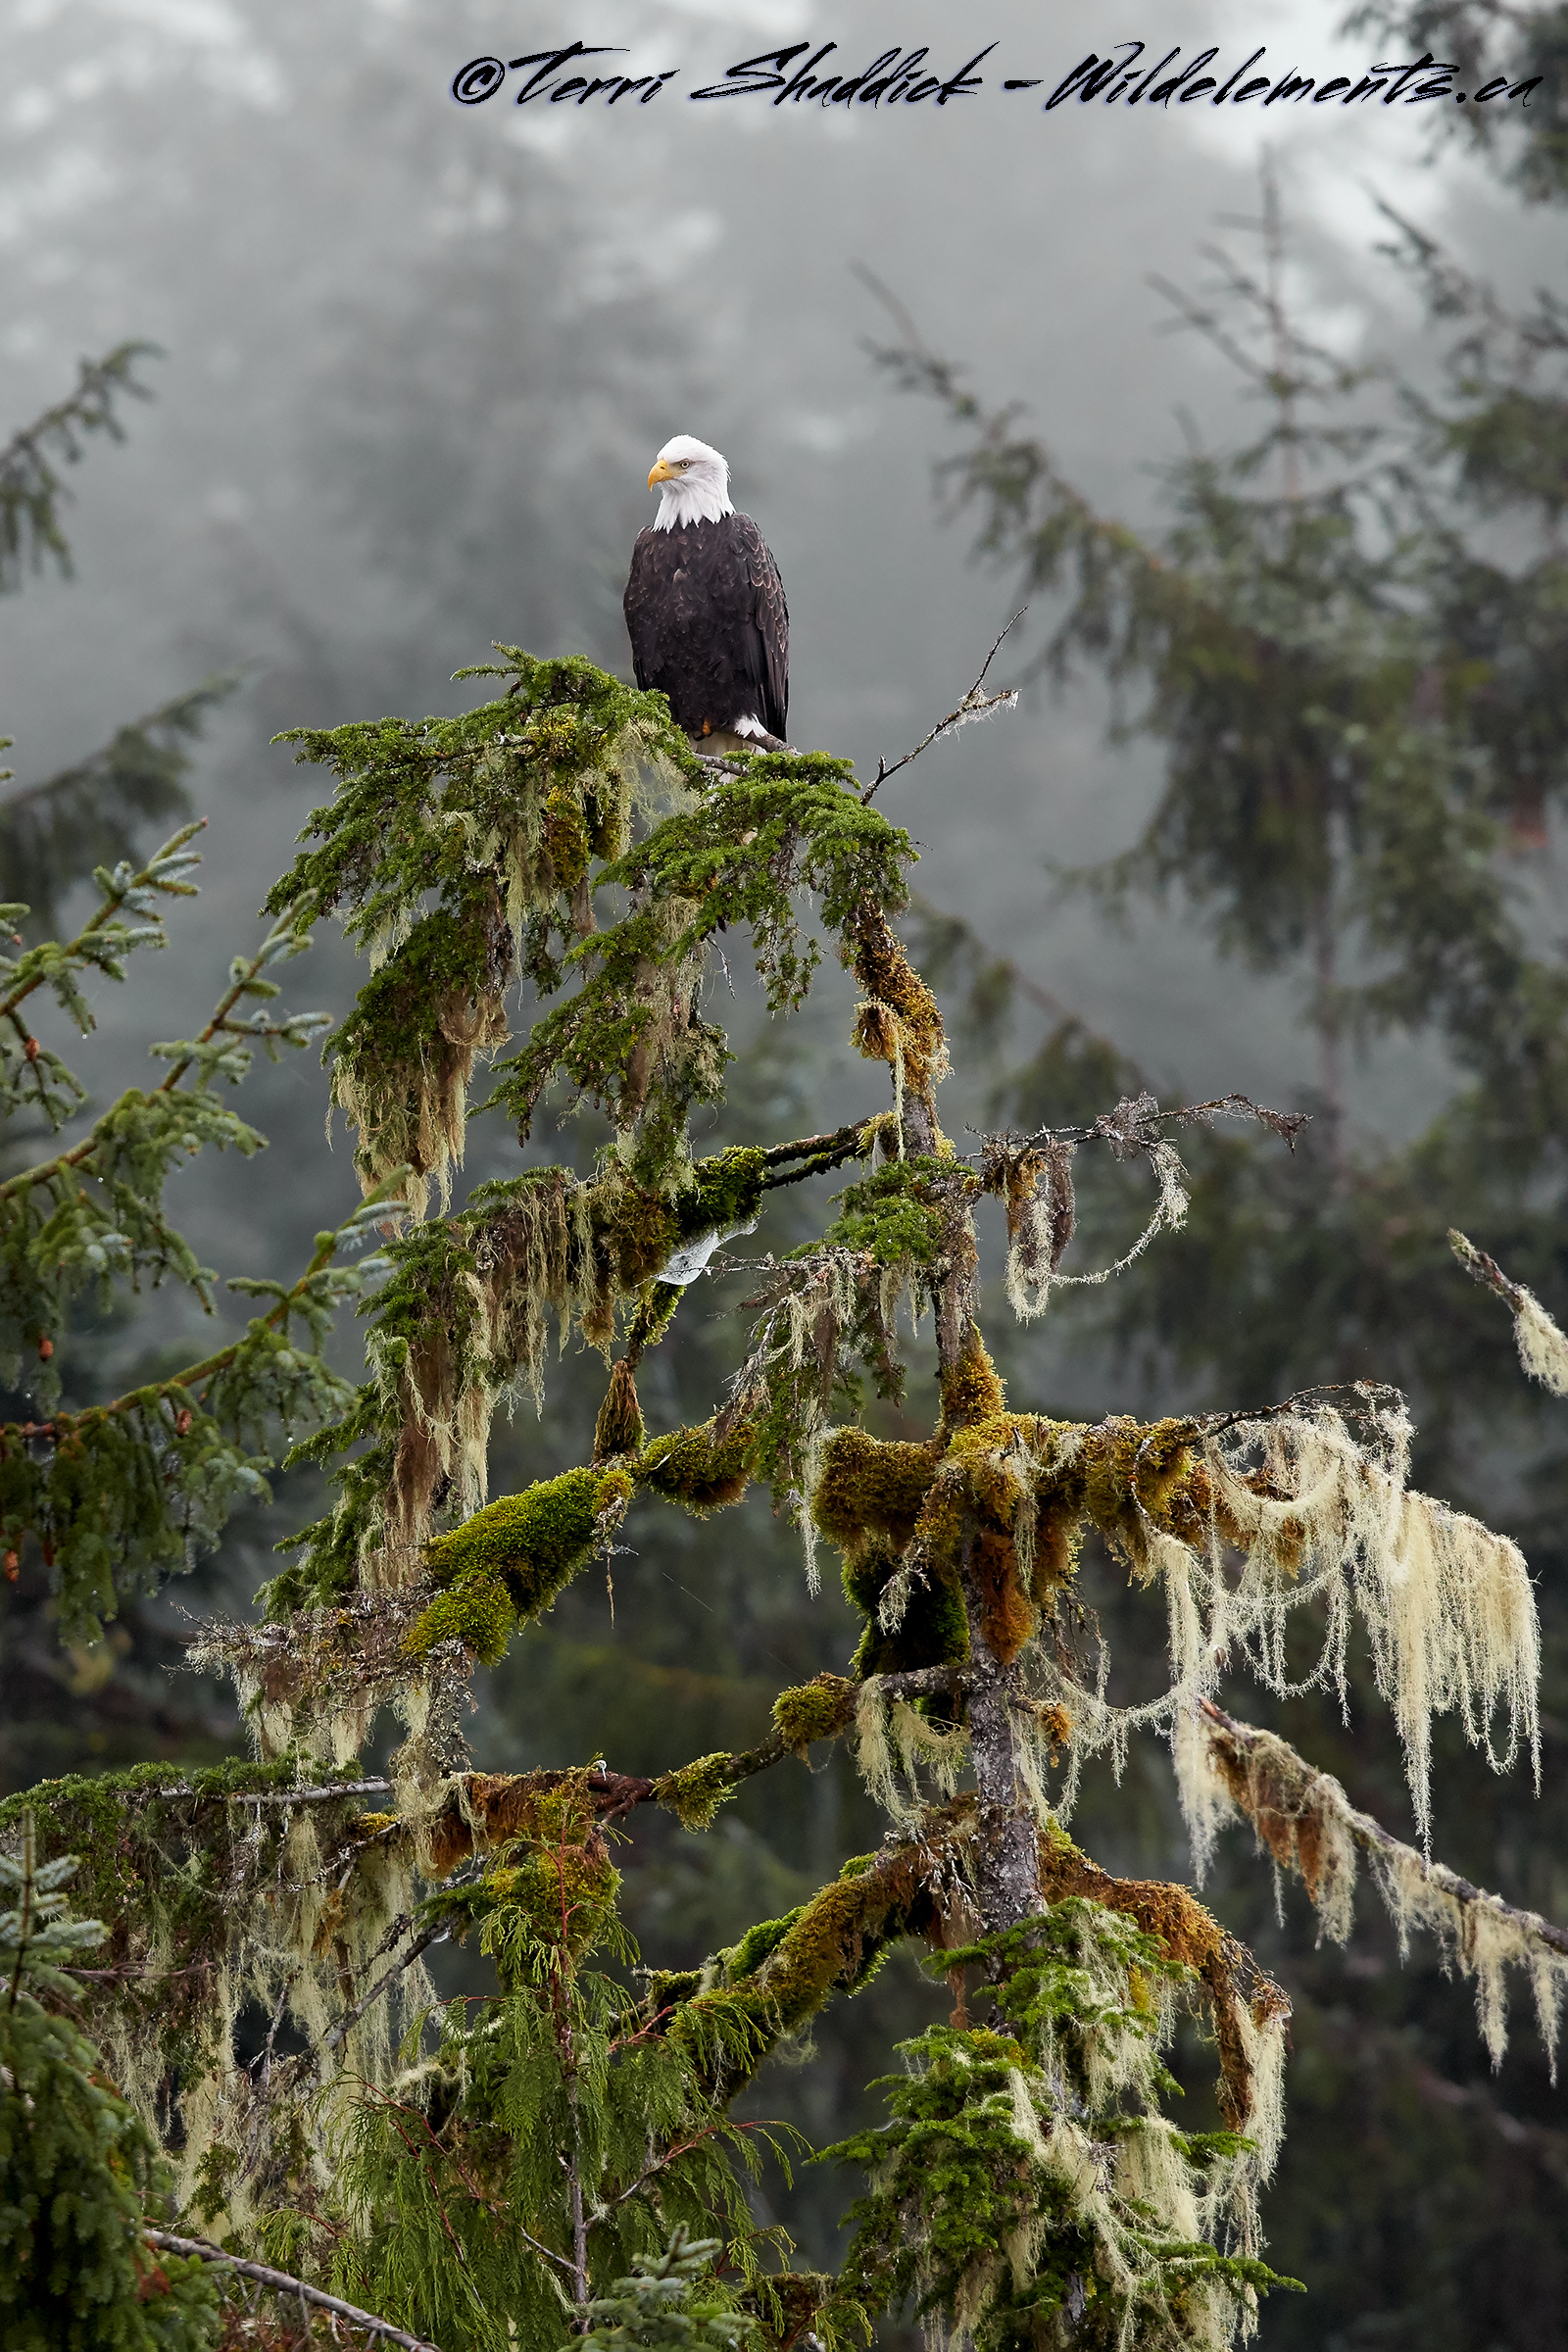 Bald Eagle perched on tree